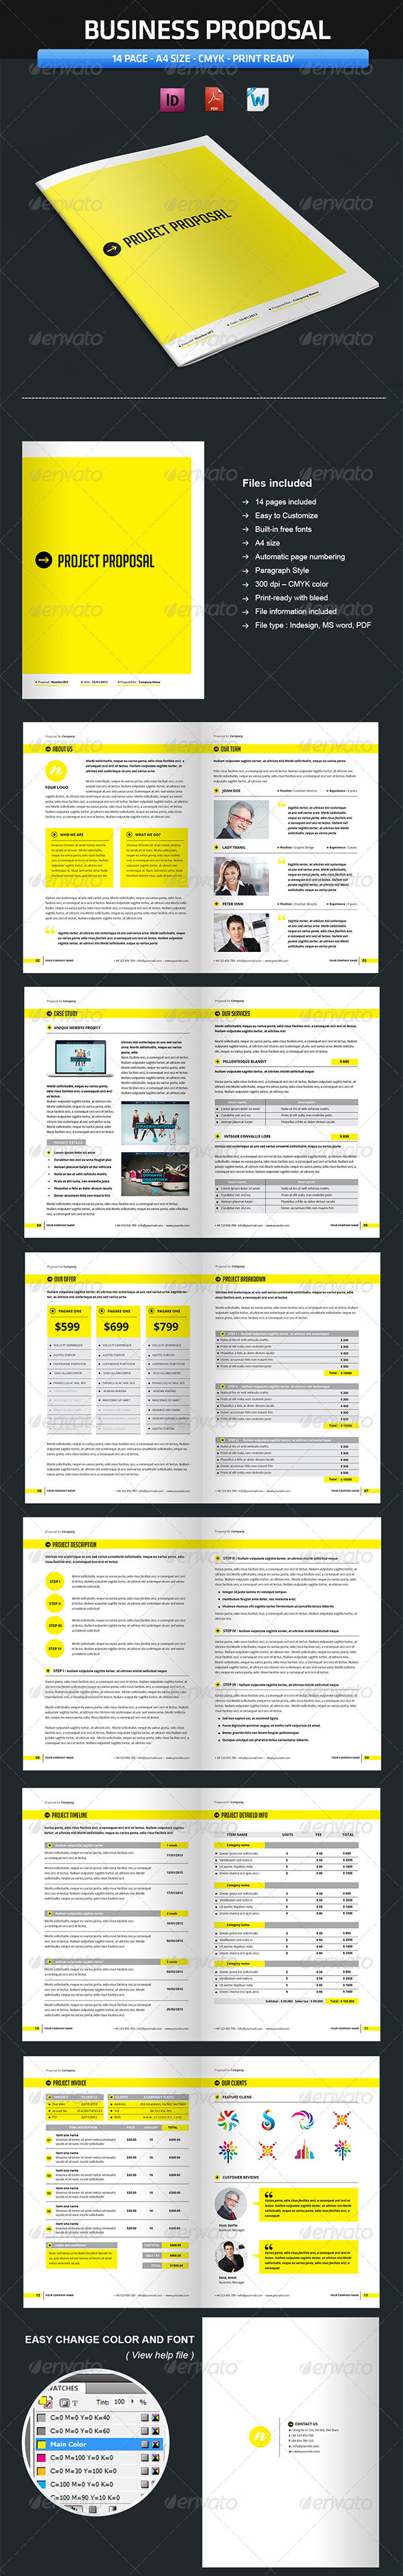 Proposal Template (Vol3) - Proposals & Invoices Stationery